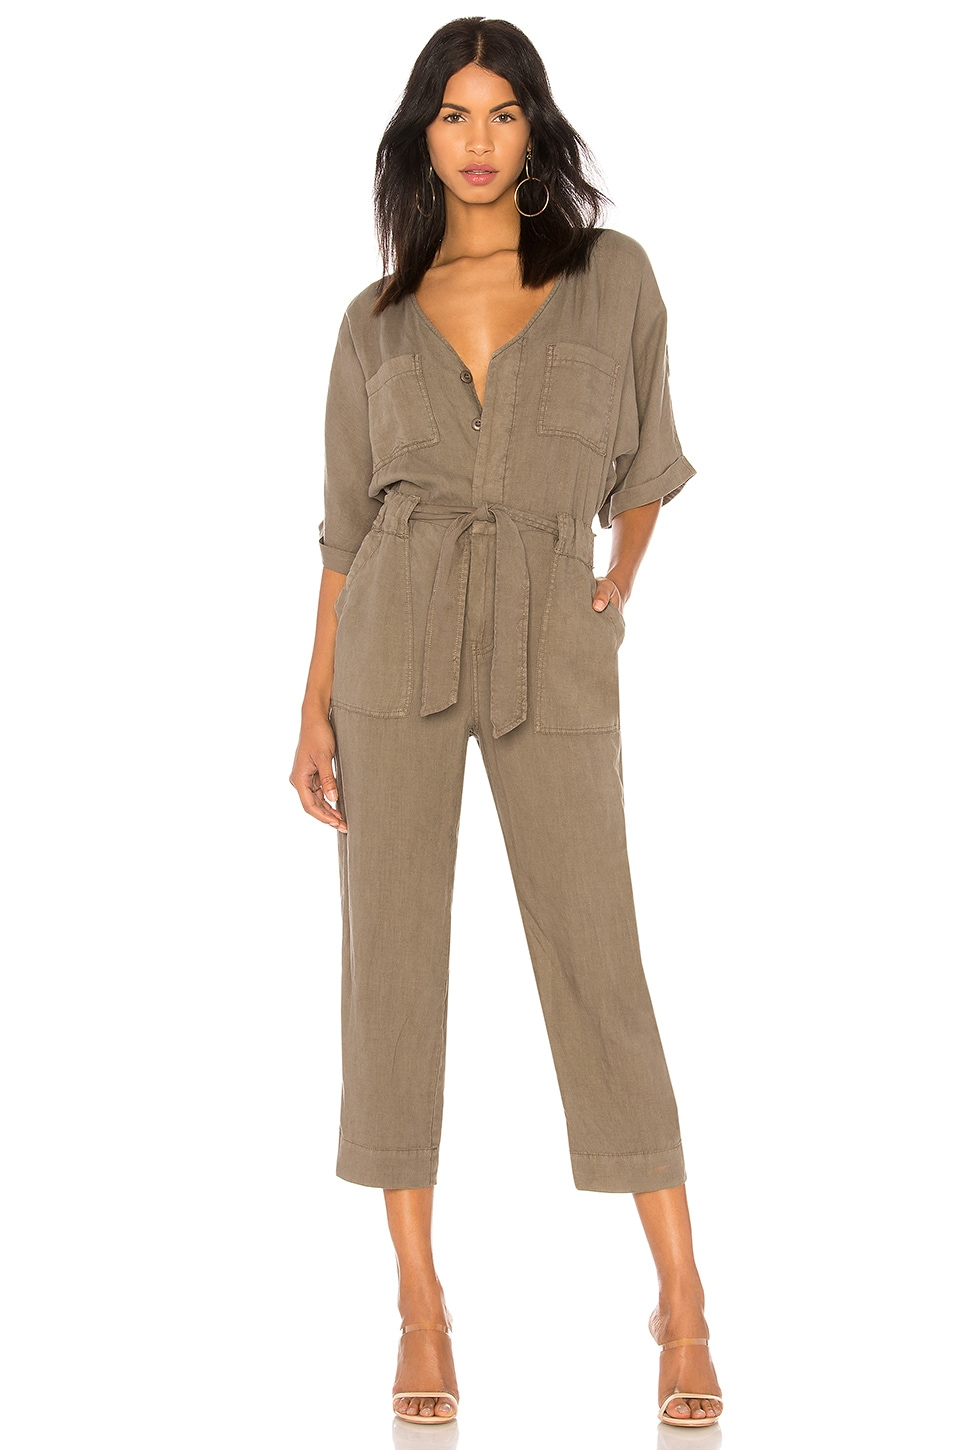 Joie Frodina Jumpsuit in Fatigue